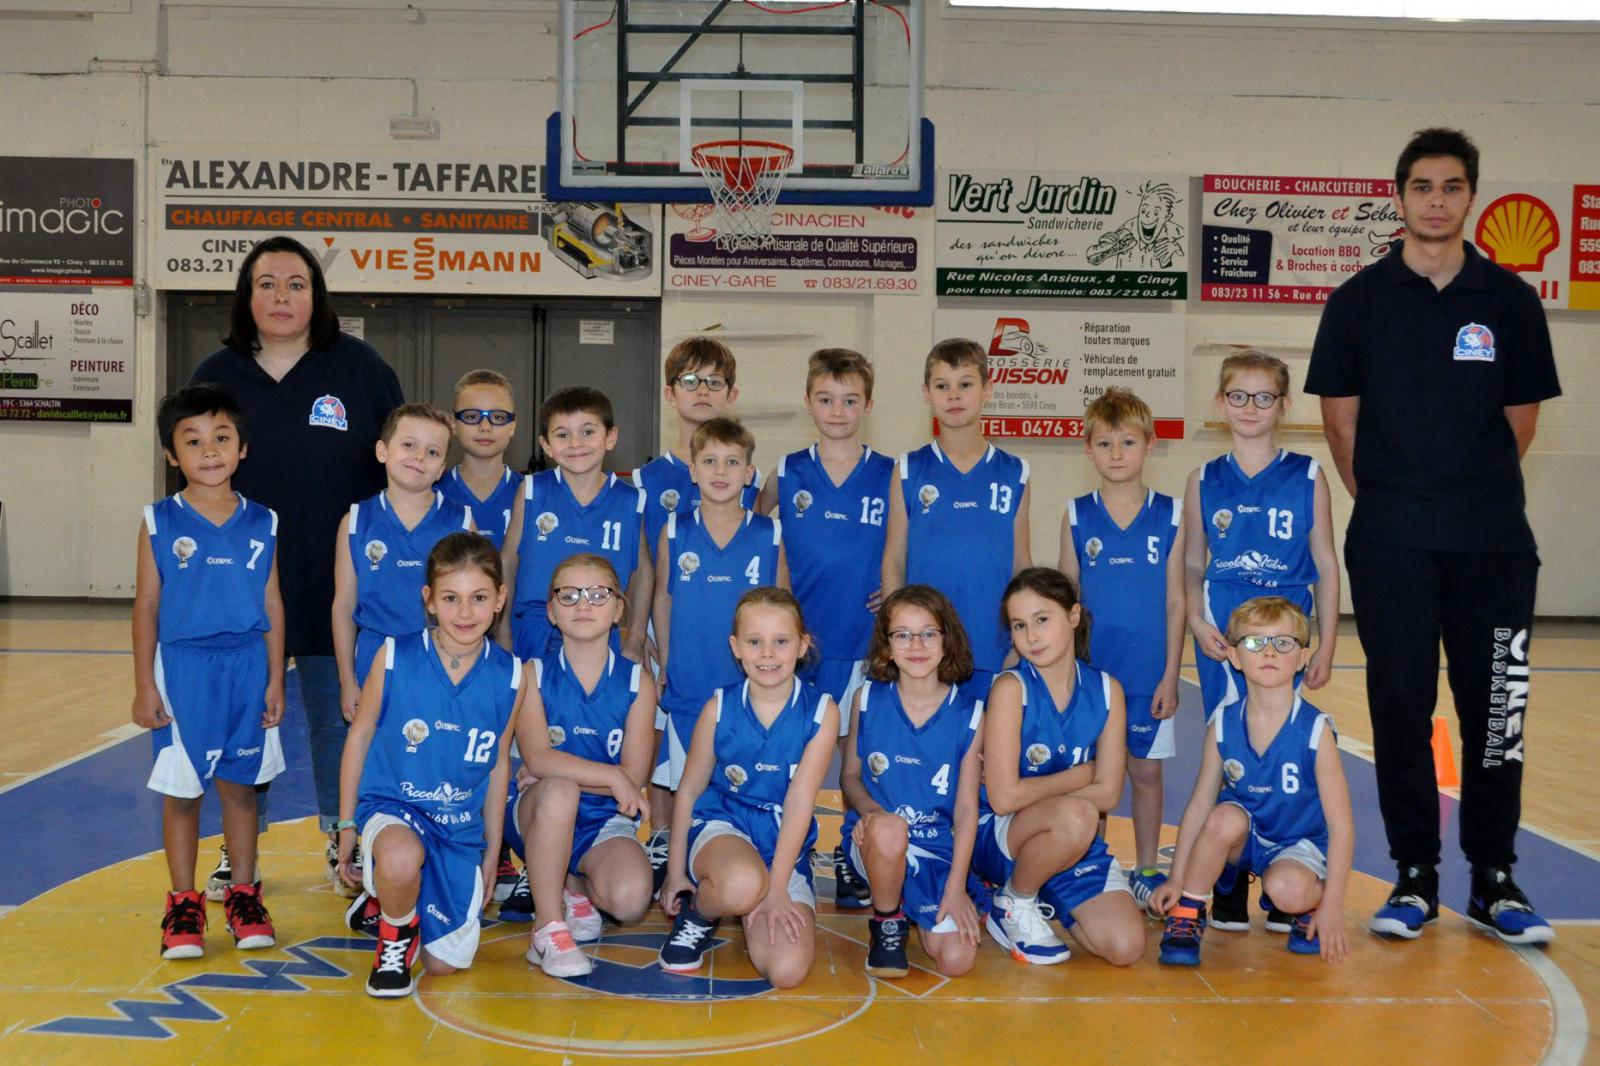 U8 mixtes CINEY B - Royal Basket Club Ciney